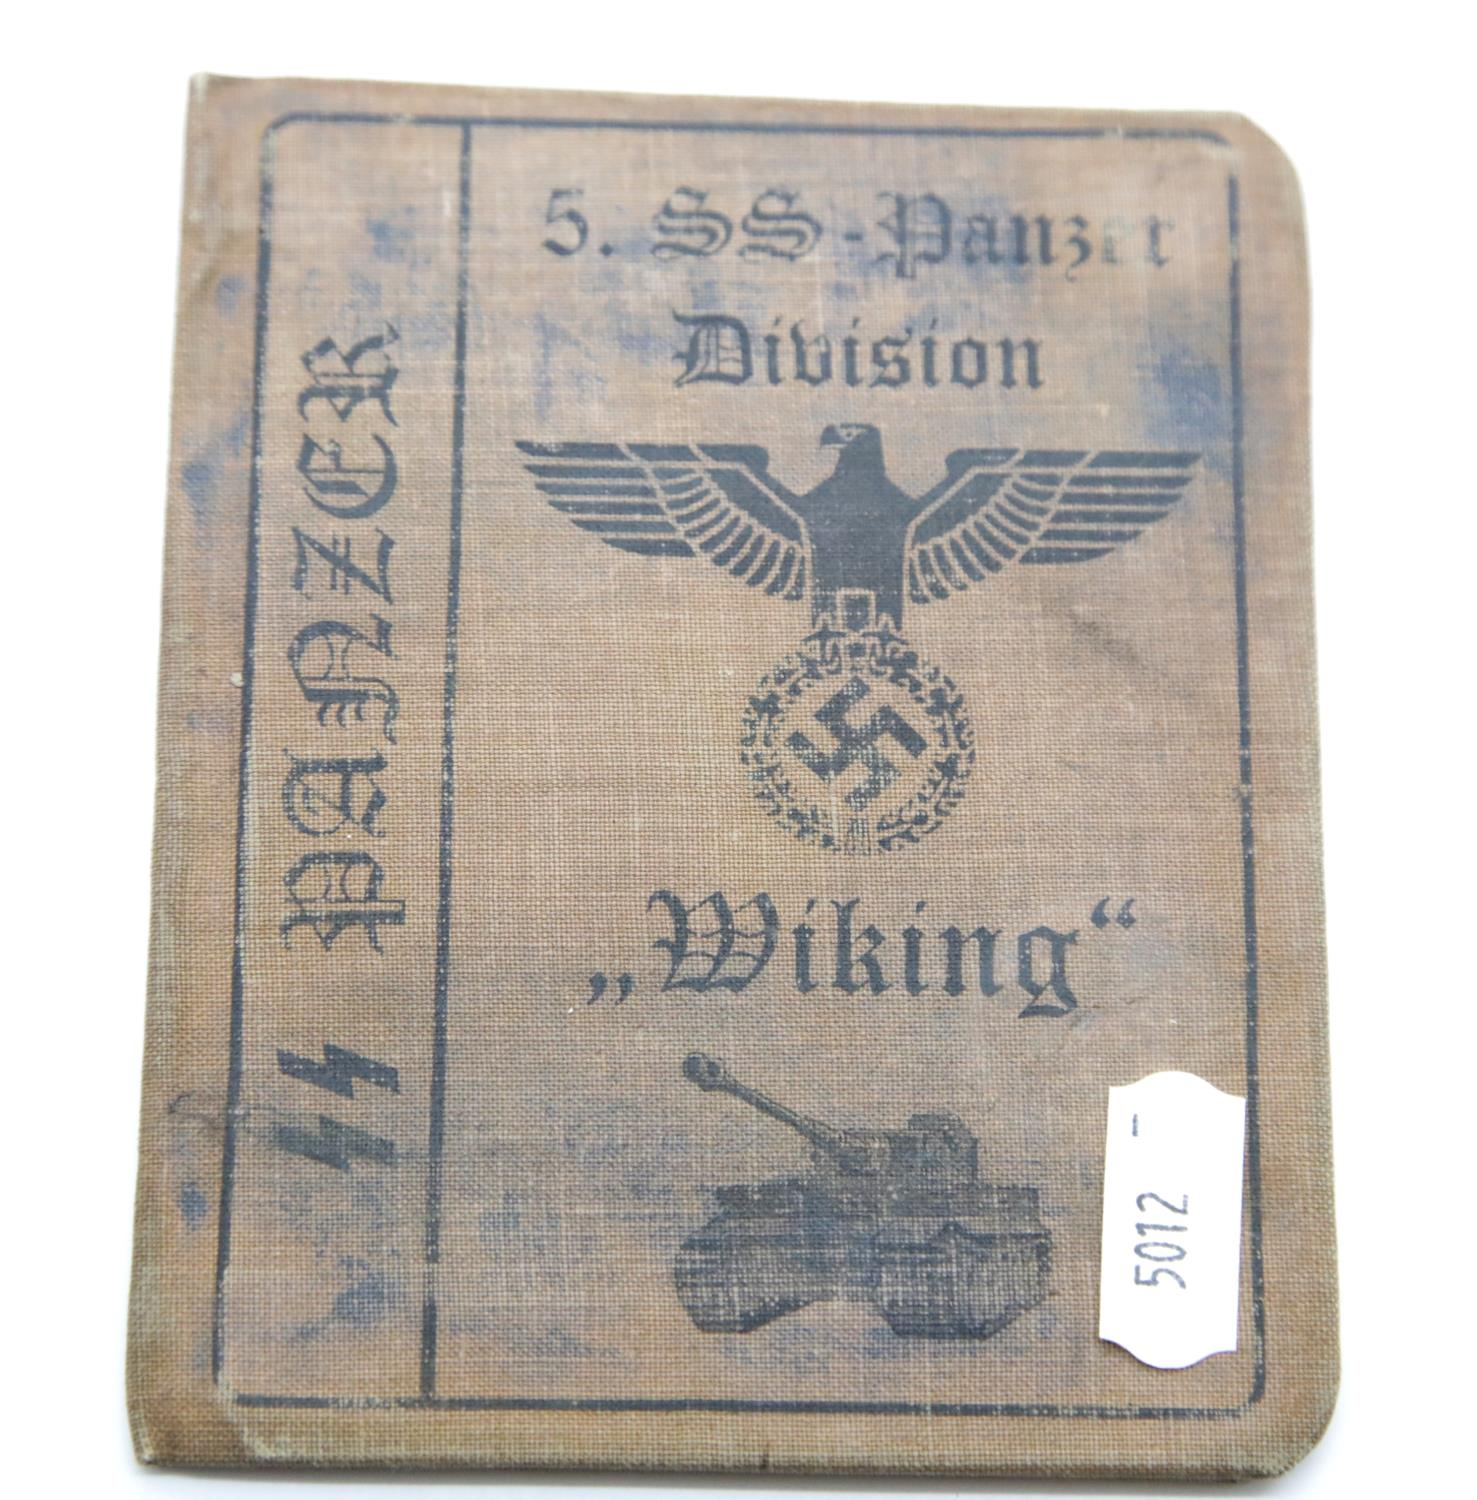 Lot 3045 - German SS type canvas bound identity book 'Wiking'. P&P Group 1 (£14+VAT for the first lot and £1+